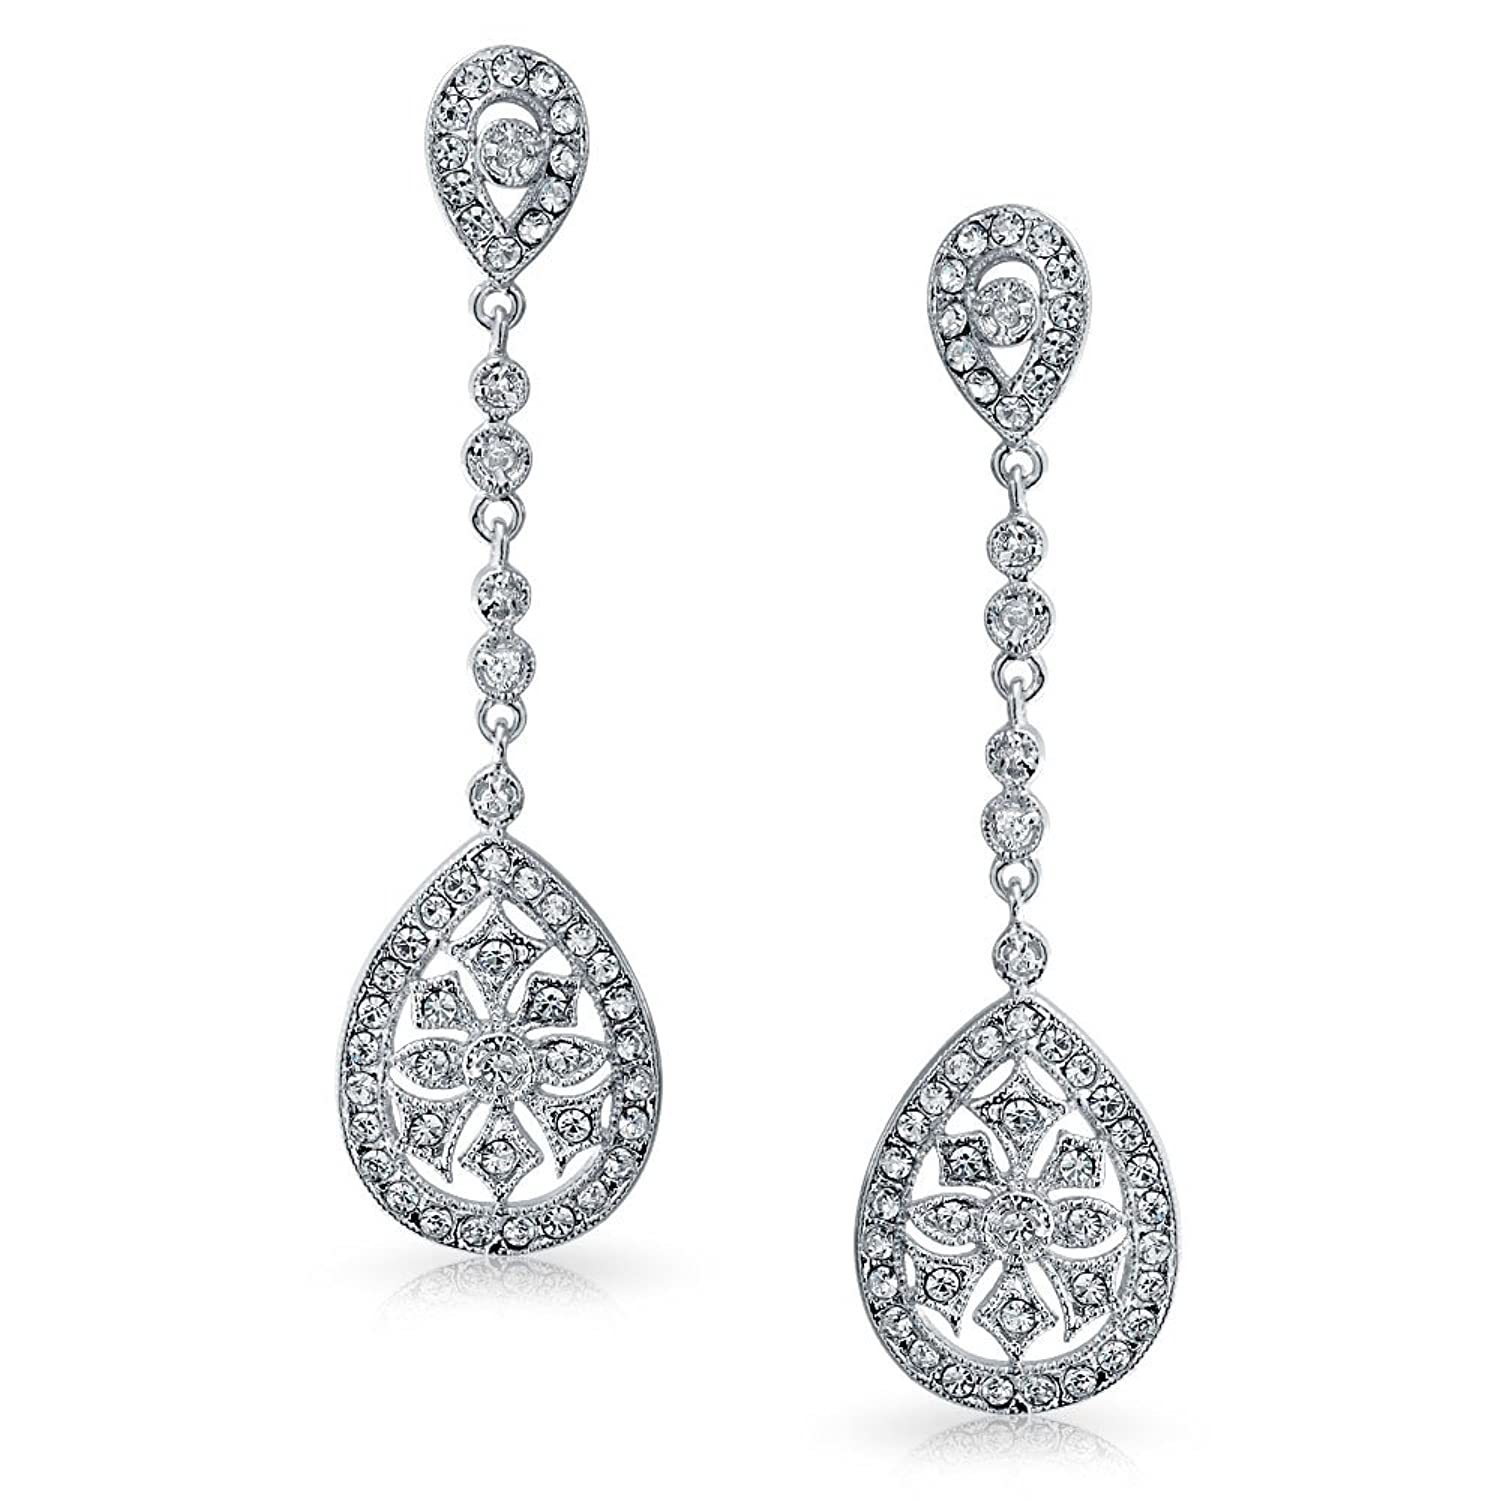 Amazon bling jewelry cz teardrop bridal chandelier earrings amazon bling jewelry cz teardrop bridal chandelier earrings rhodium plated brass dangle earrings jewelry arubaitofo Images